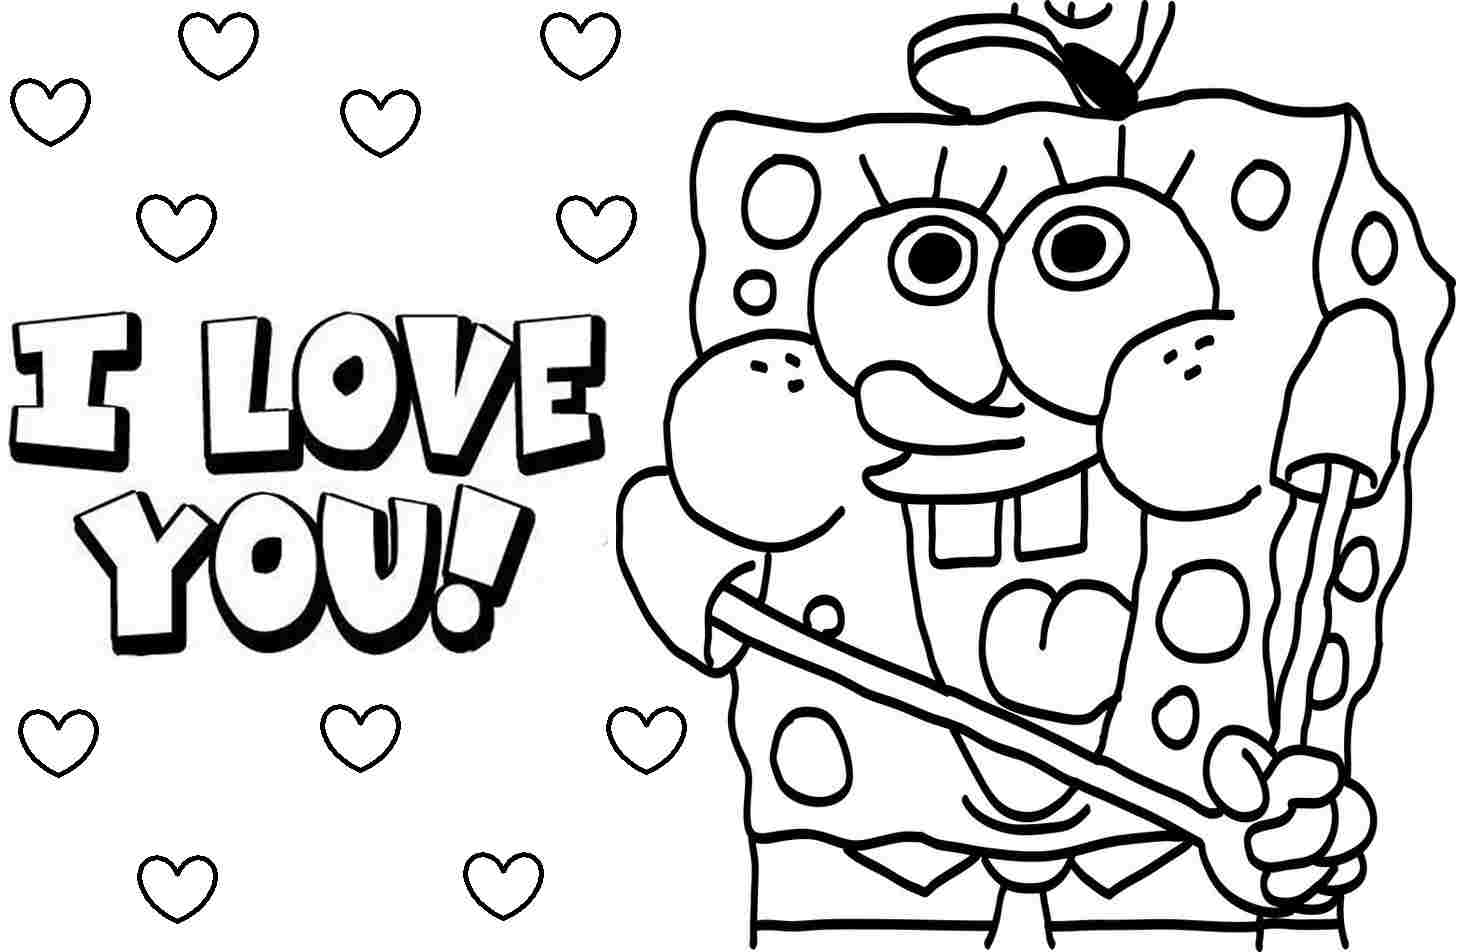 spongebob coloring pages for free printable spongebob coloring pages for kids cool2bkids for spongebob pages free coloring